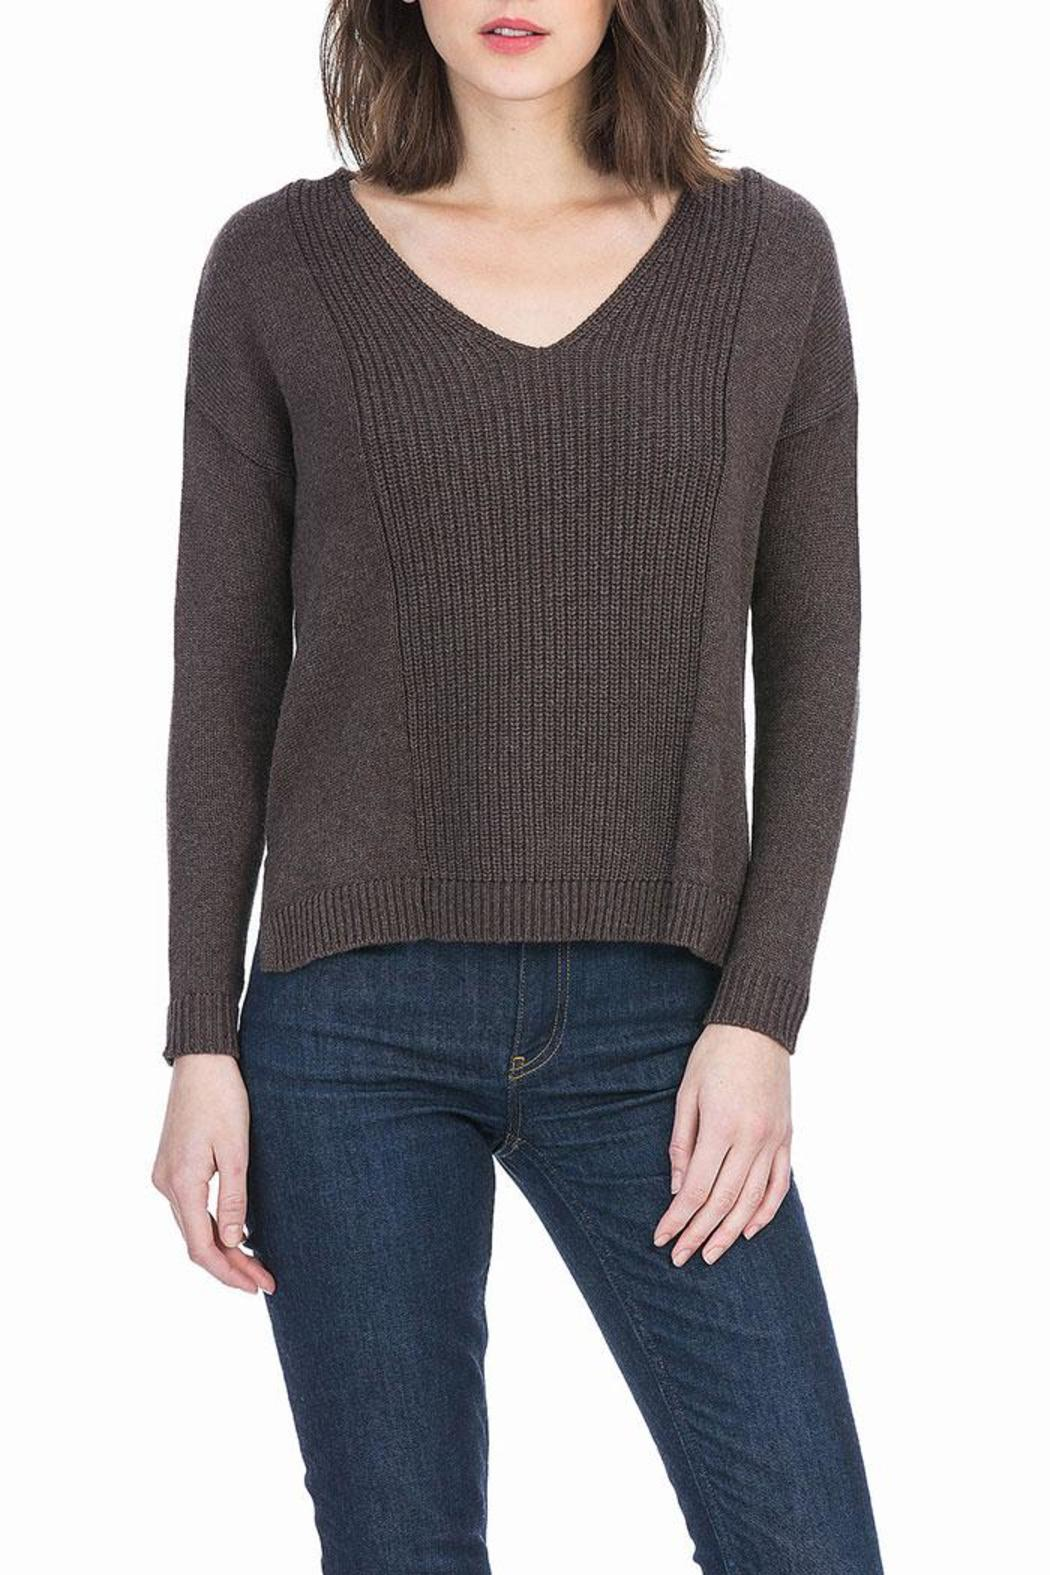 Lilla P Cotton Cashmere Sweater - Main Image